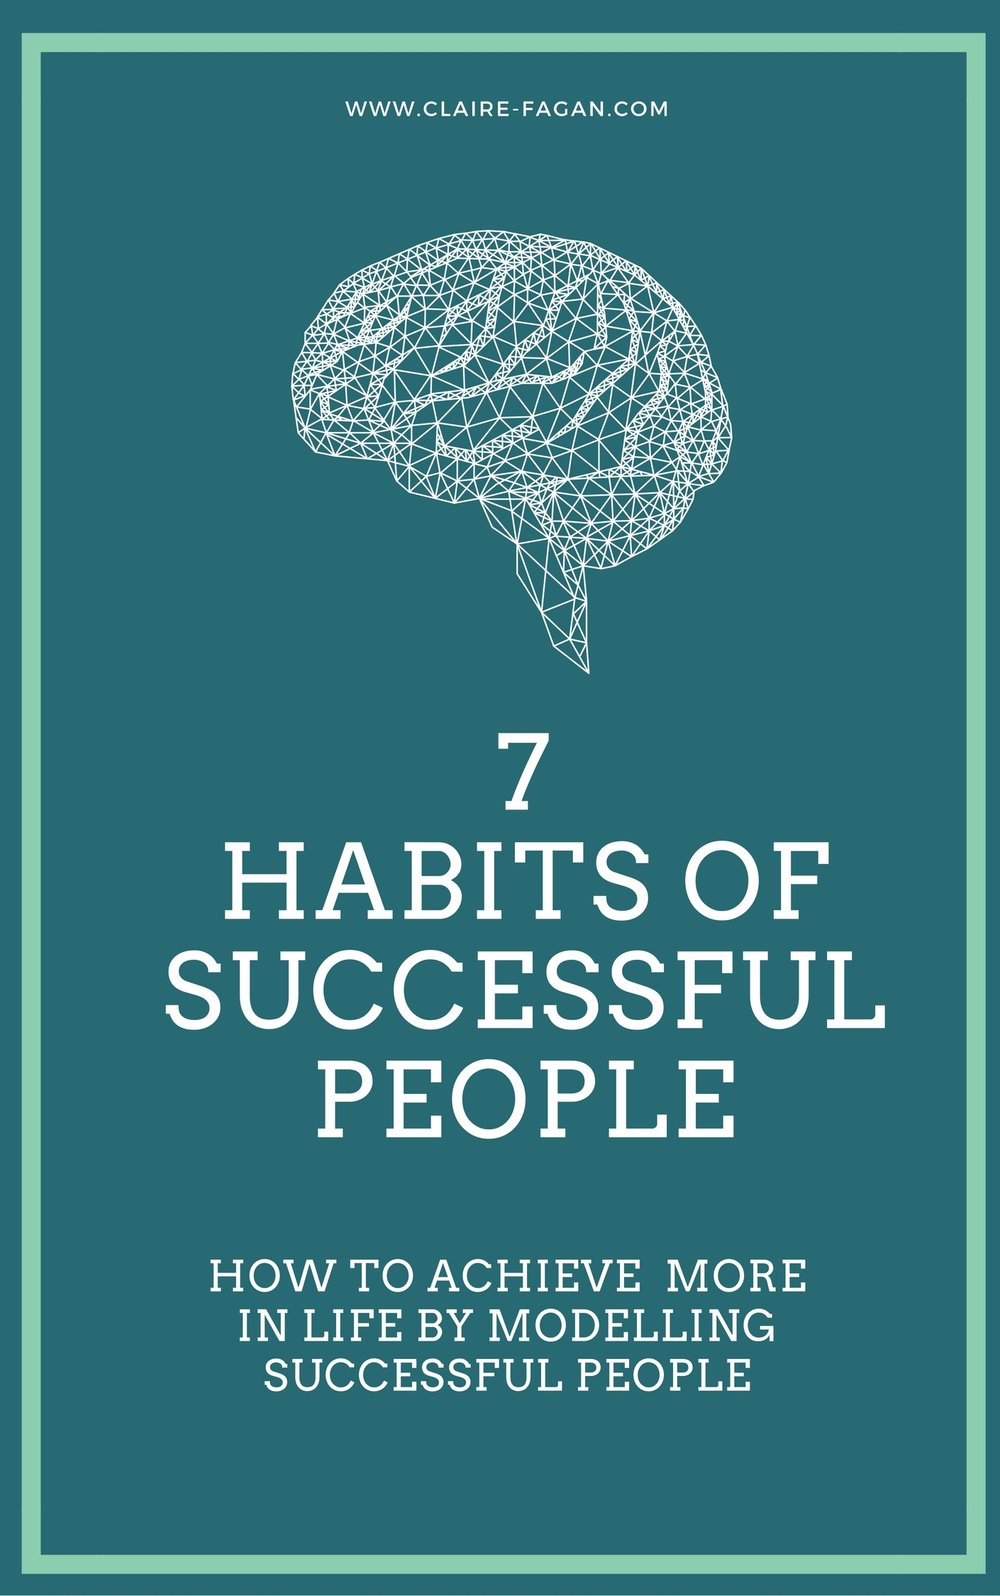 7 Habits of successful people - Get Instant Access To The 7 Traits of Successful People And Discover How To Achieve More in Life By Modelling What Successful People Do